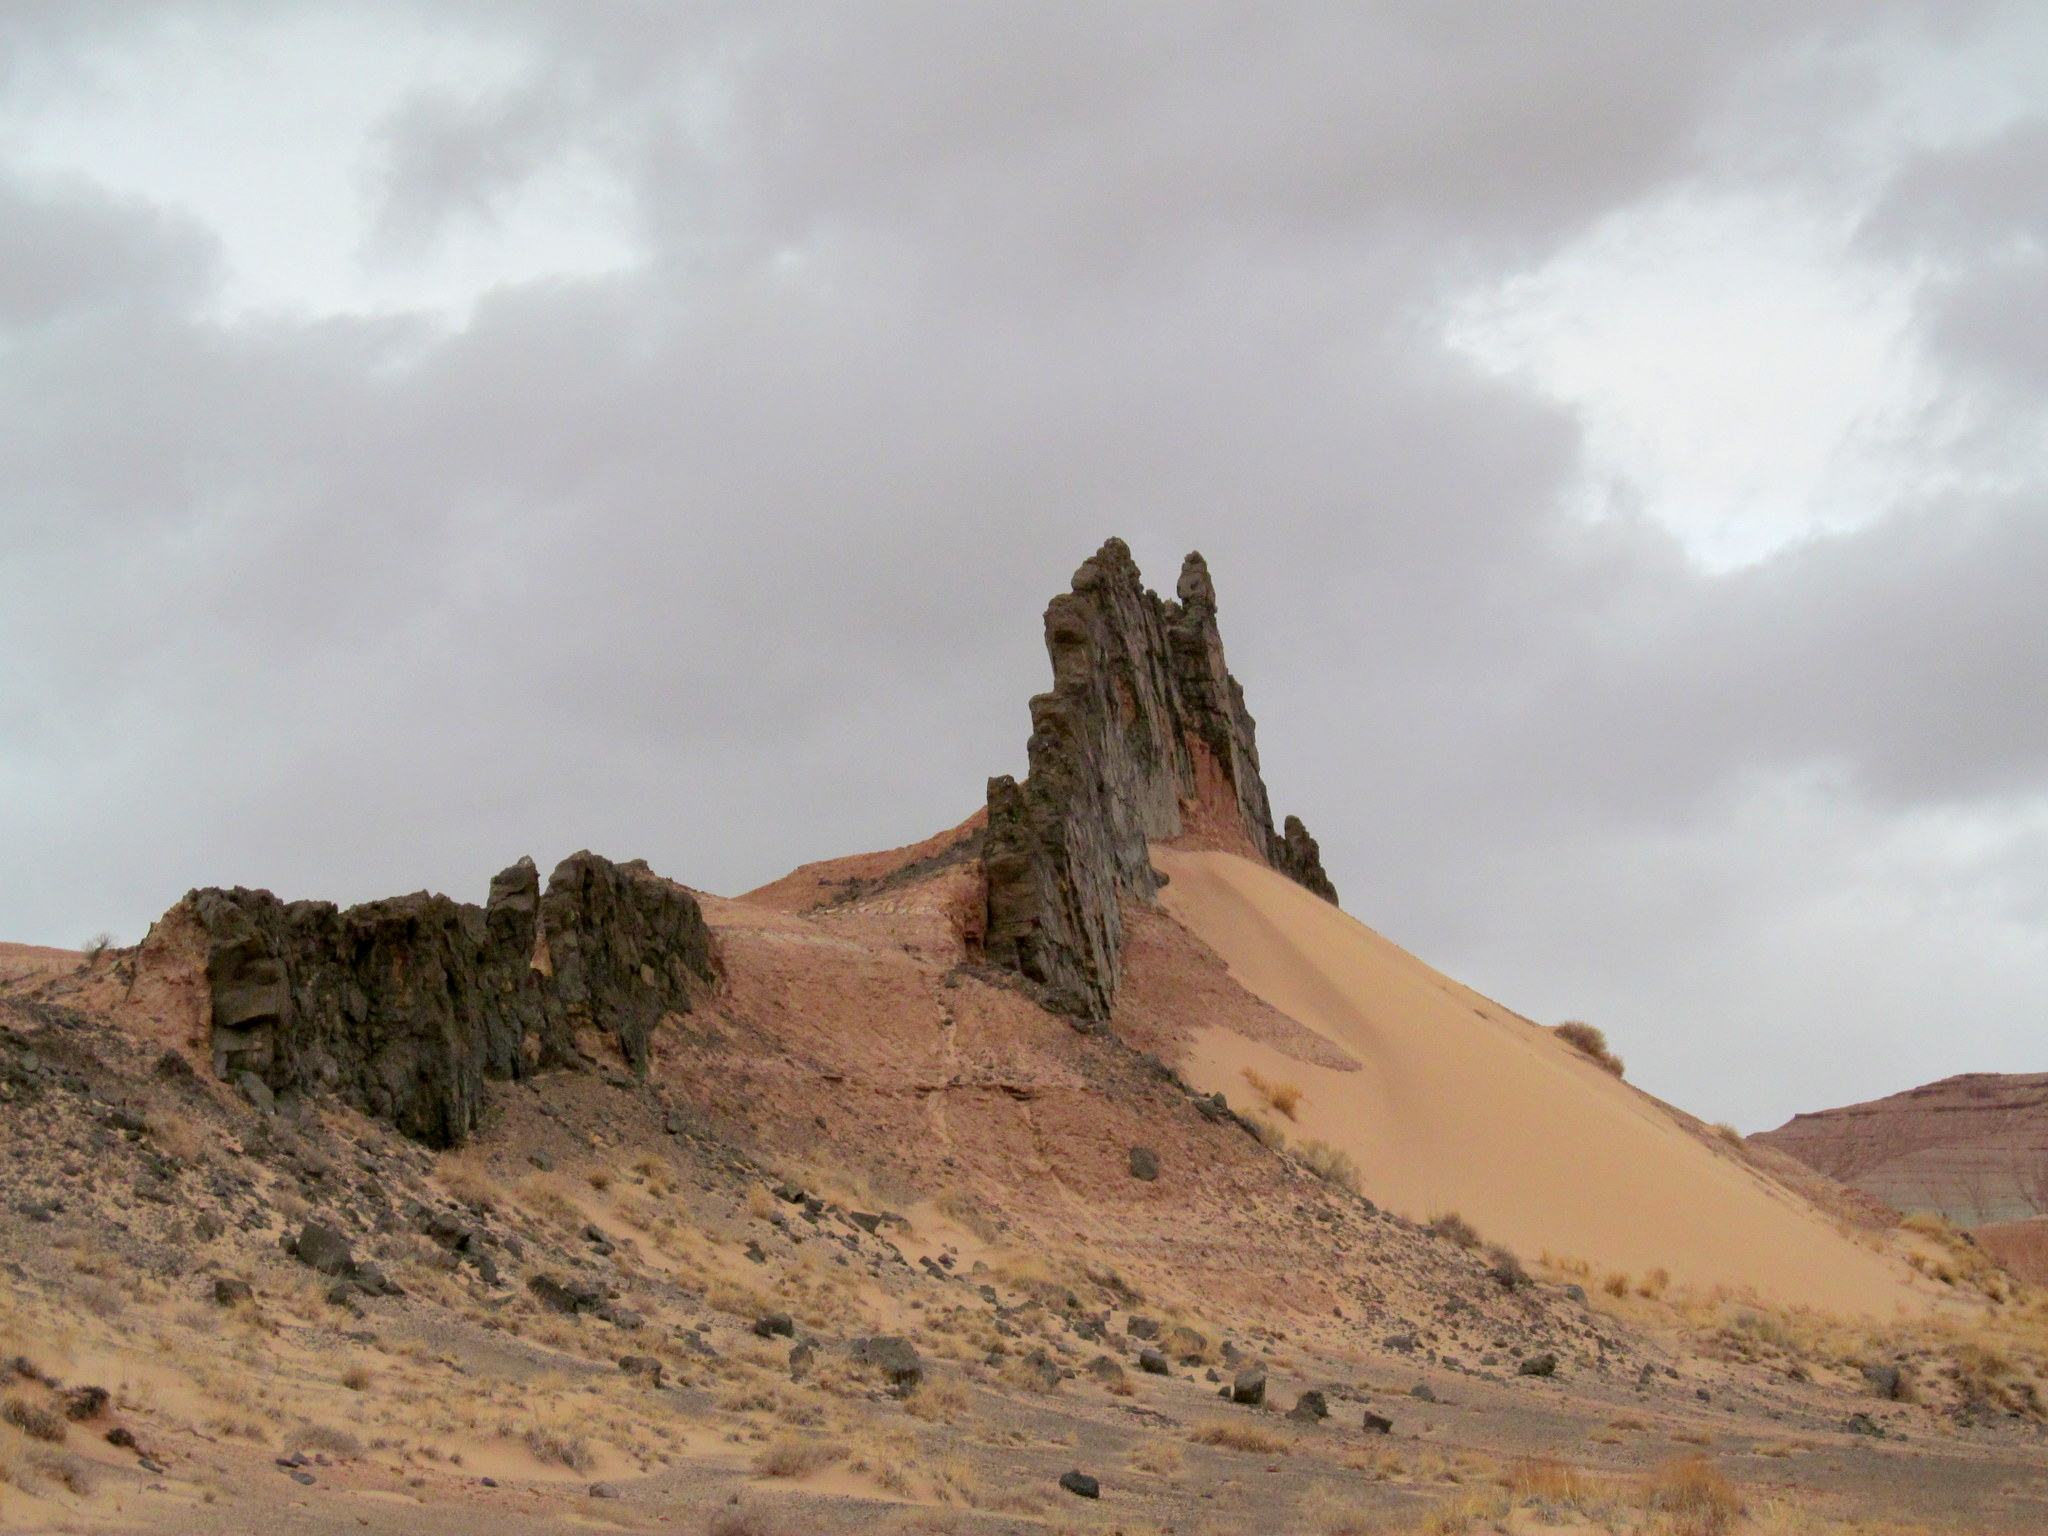 Photo: Volcanic dike at Mussentuchit Flat